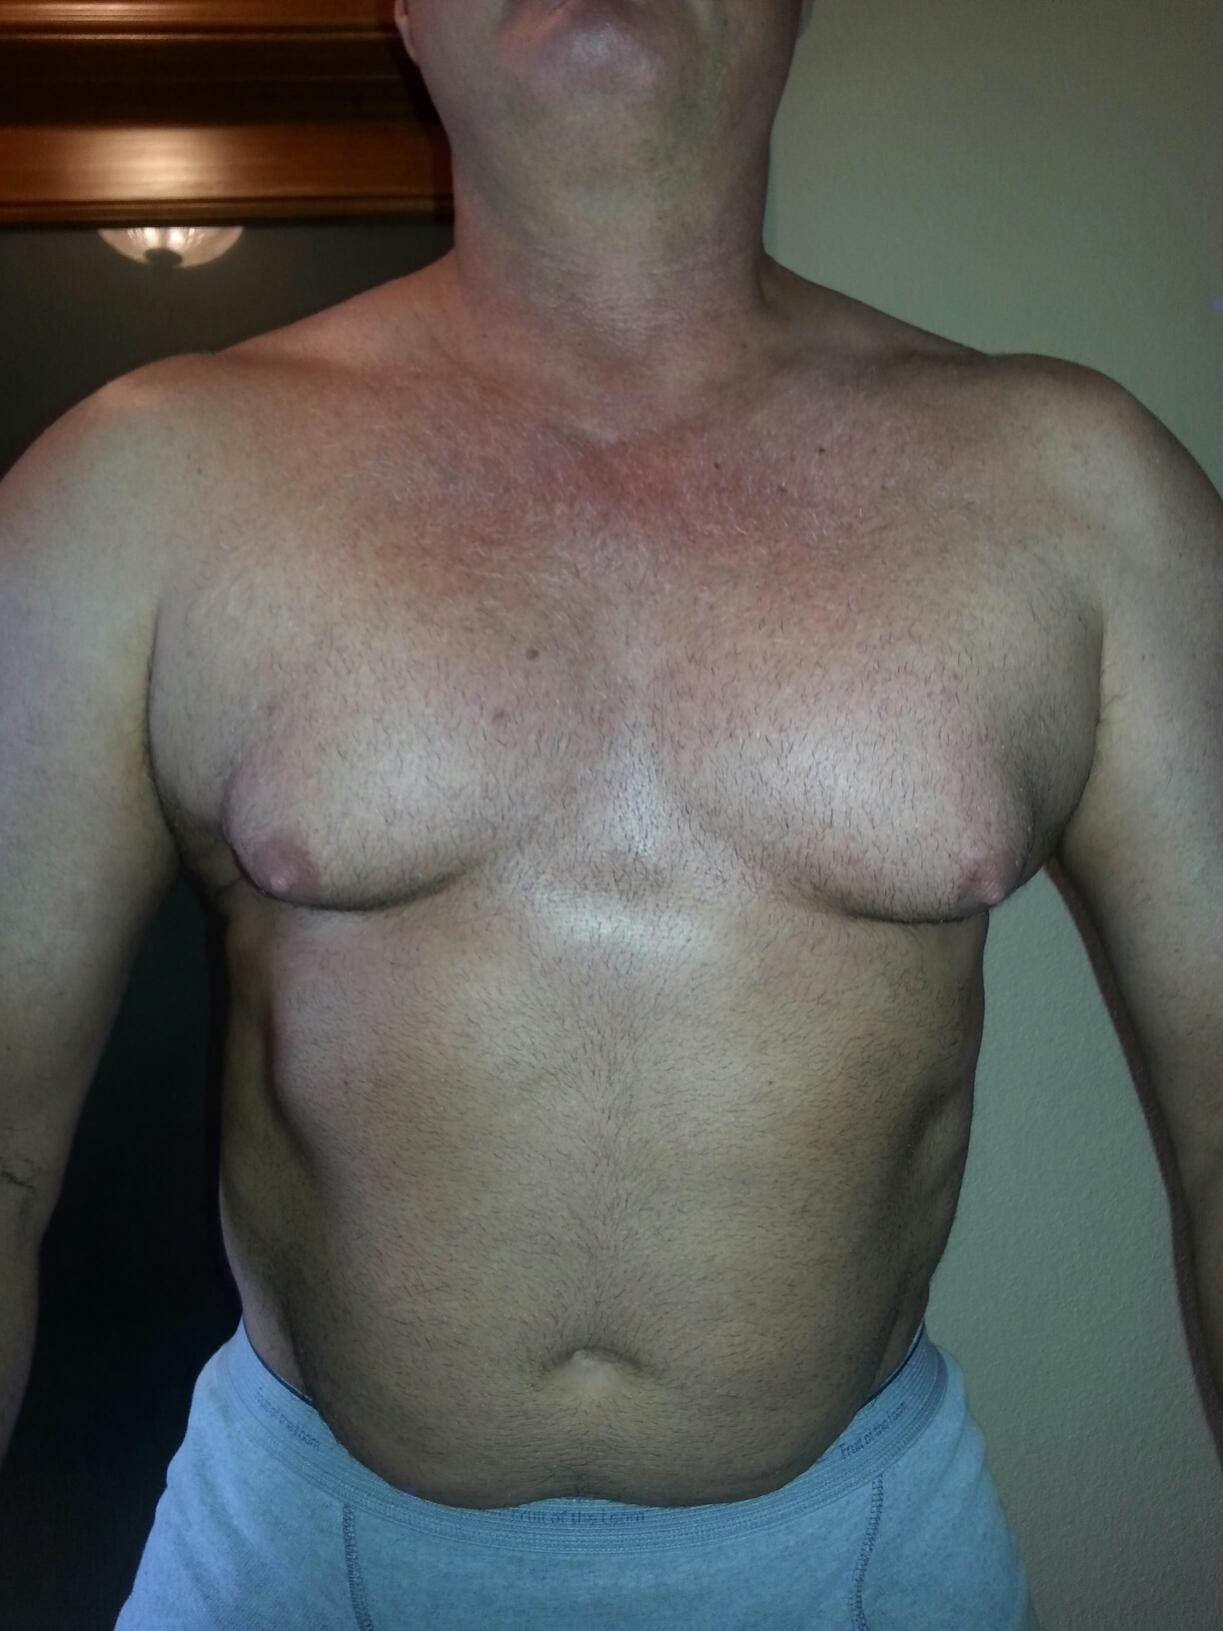 GYNO AGAIN!!! this time on just 250mg test and using arimadex